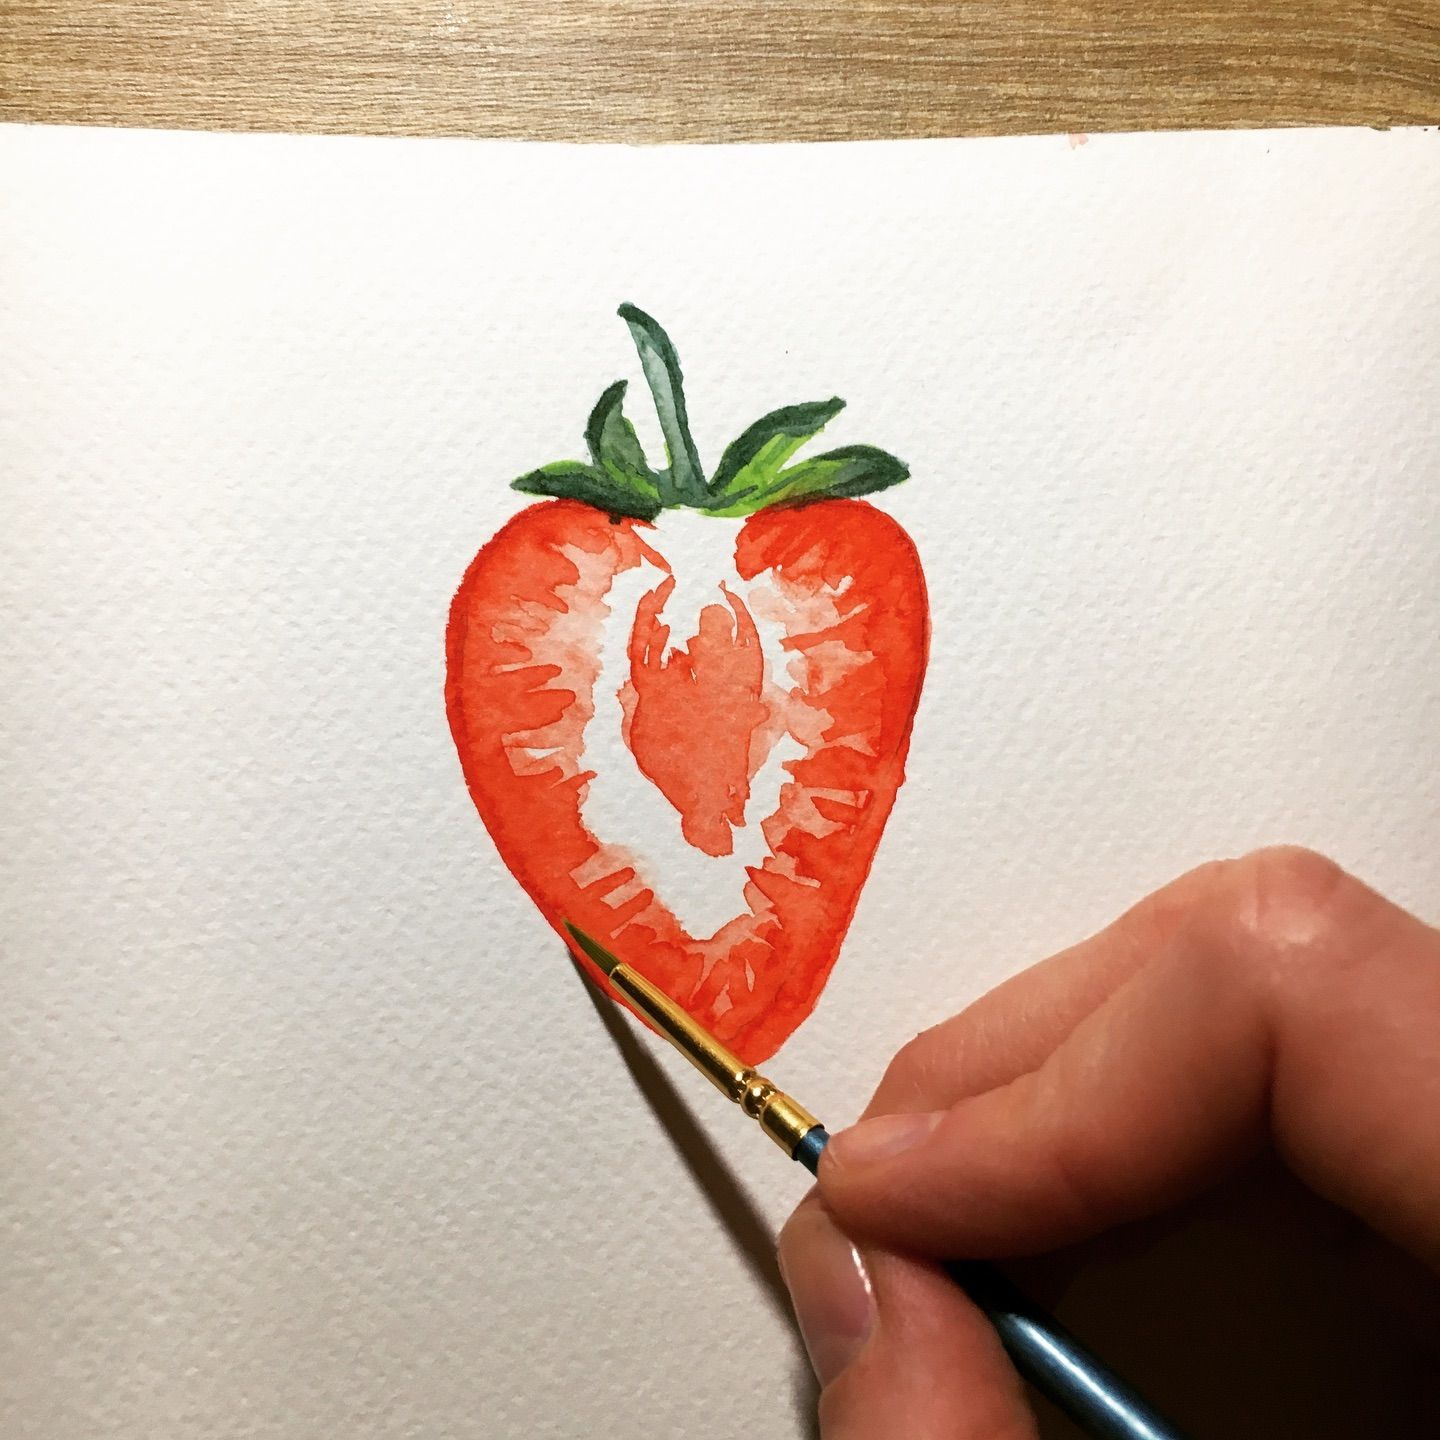 Just tried the strawberry 🍓 tutorial from @dearannart ! Never tried a tutorial before, this was fun! Thanks so much! . . . #tutorial #strawberry #dearannart #try #spring #madewithlove #watercolour #watercolor #aquarellepainting #painting #artwork #artist #watercolorpainting #watercolorpractice #watercolortutorial #watercolor_art #watercolor_daily